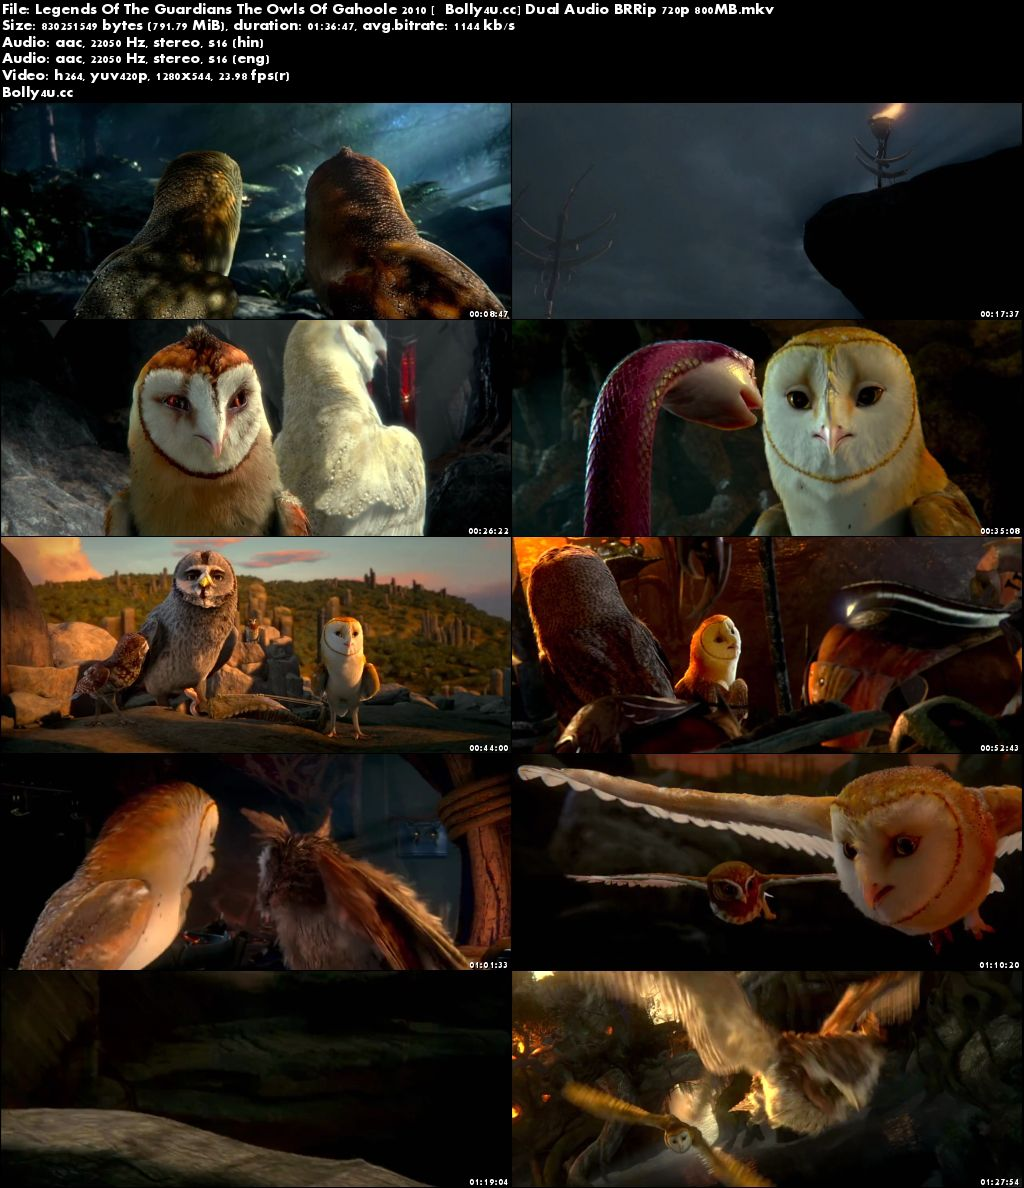 legend of the guardians full movie in hindi 480p